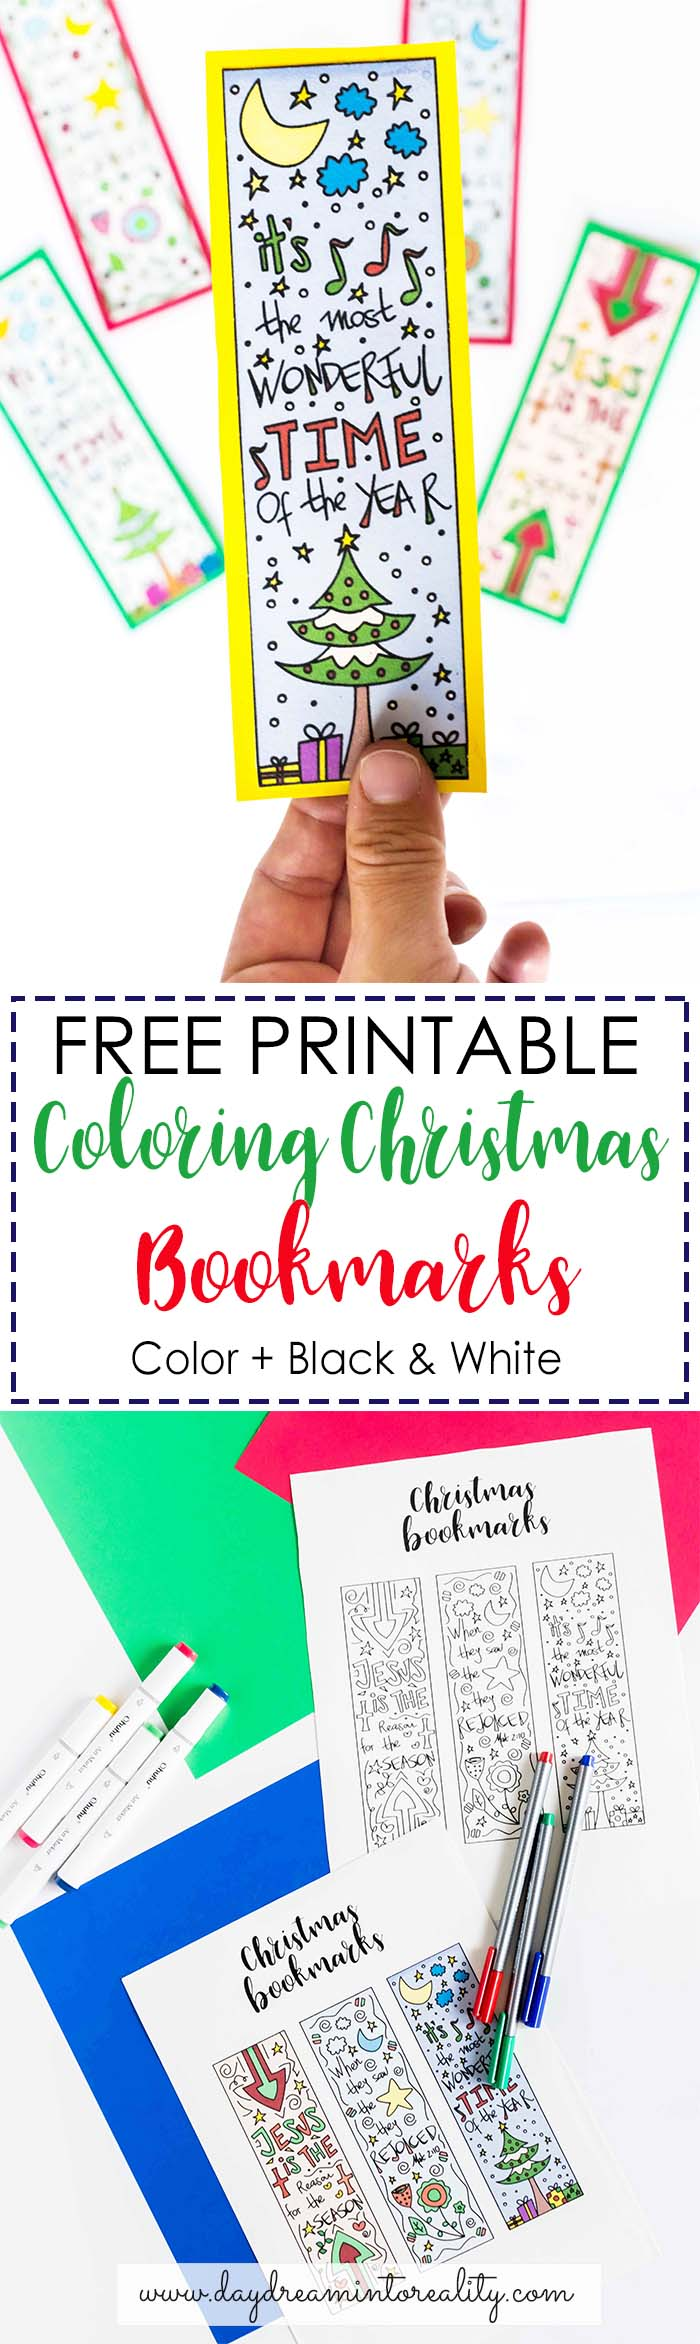 This is a photo of Sweet Free Printable Christmas Bookmarks to Color